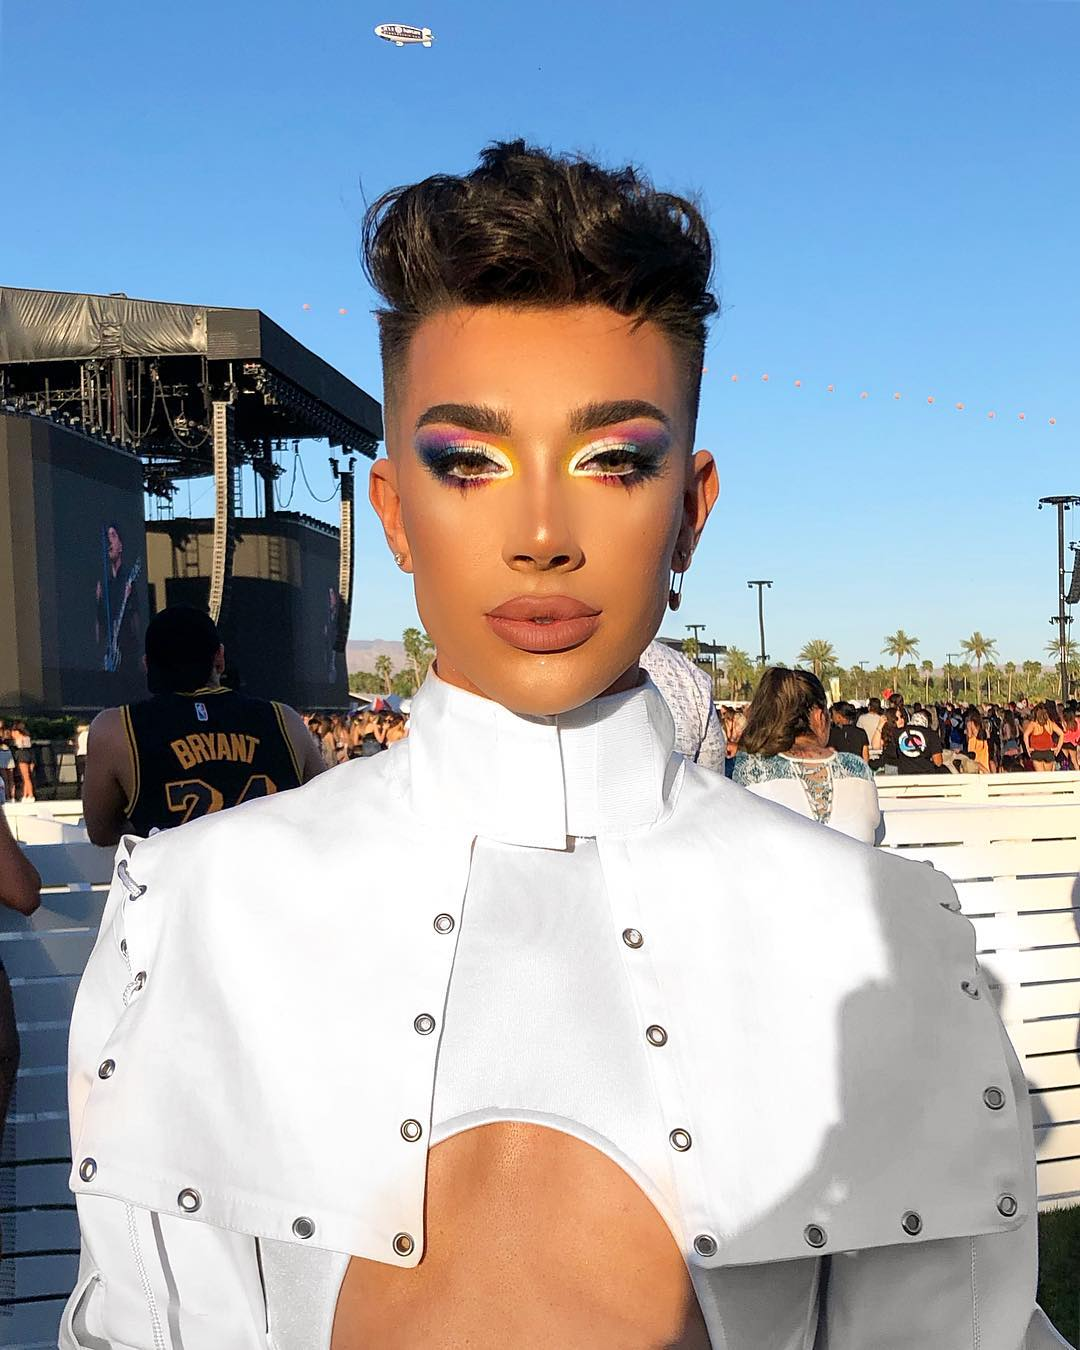 James Charles: Tips and trips from beauty vlogger